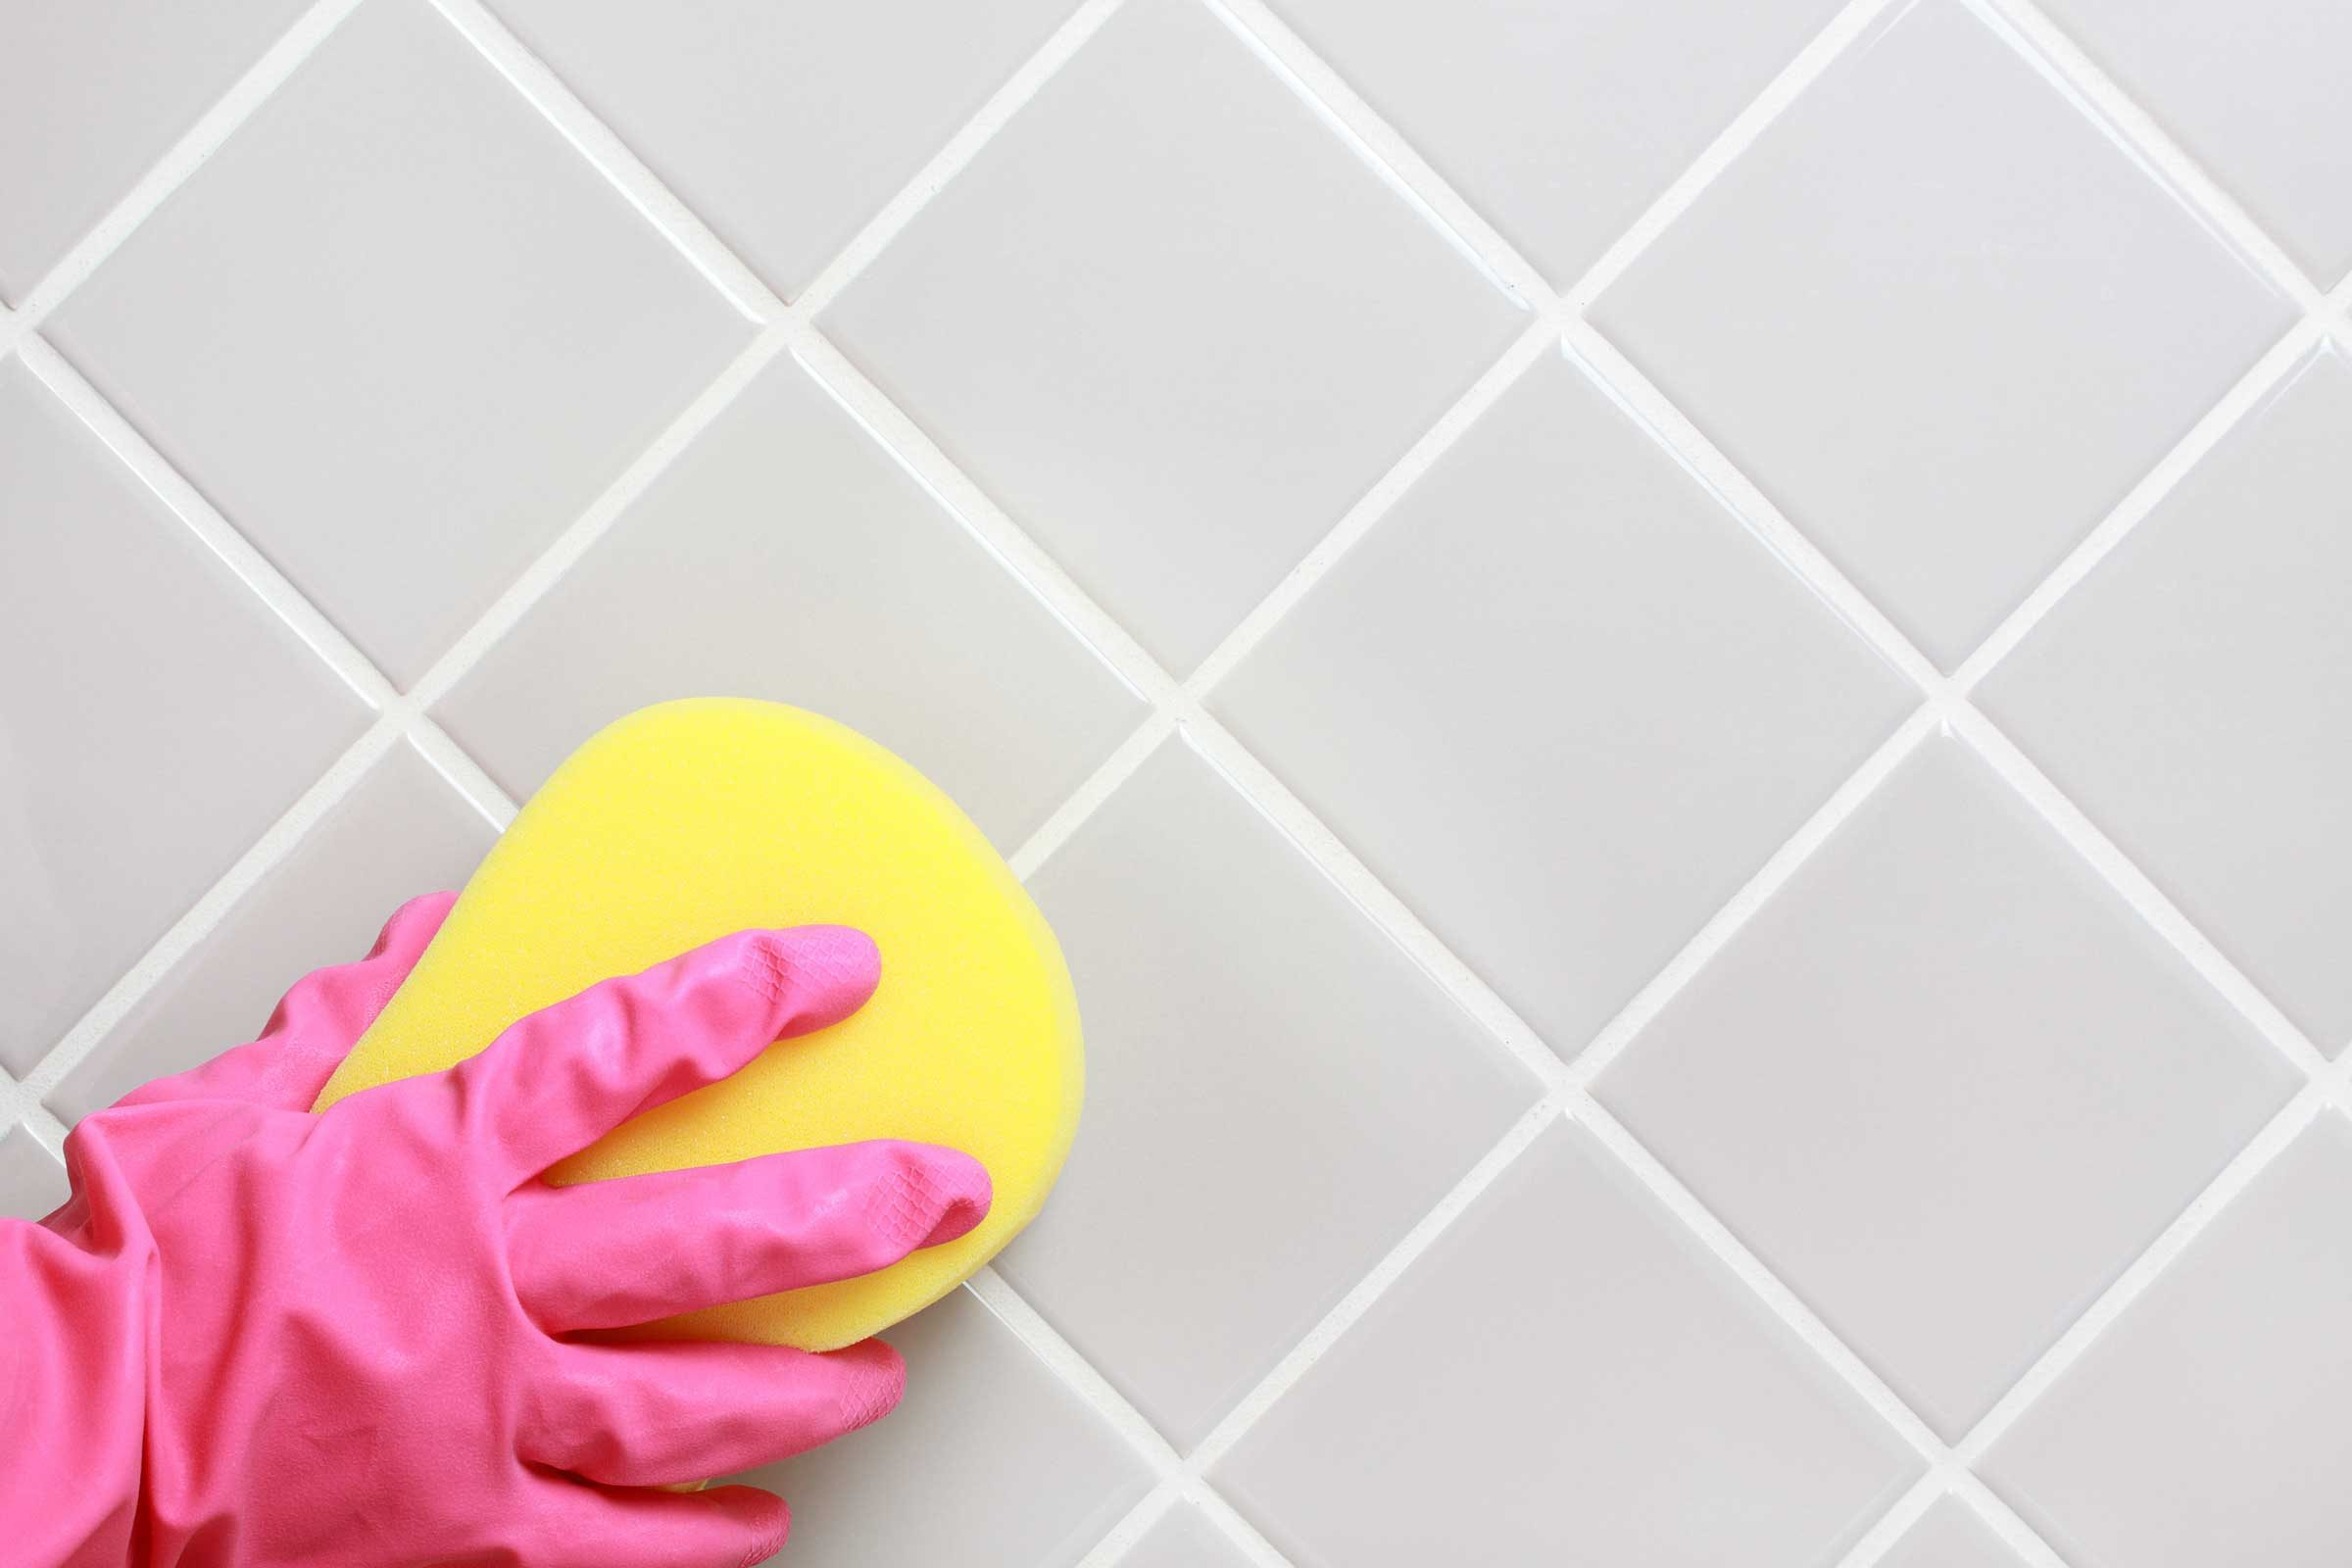 5 Best Baking Soda And Vinegar Cleaning Solutions Reader